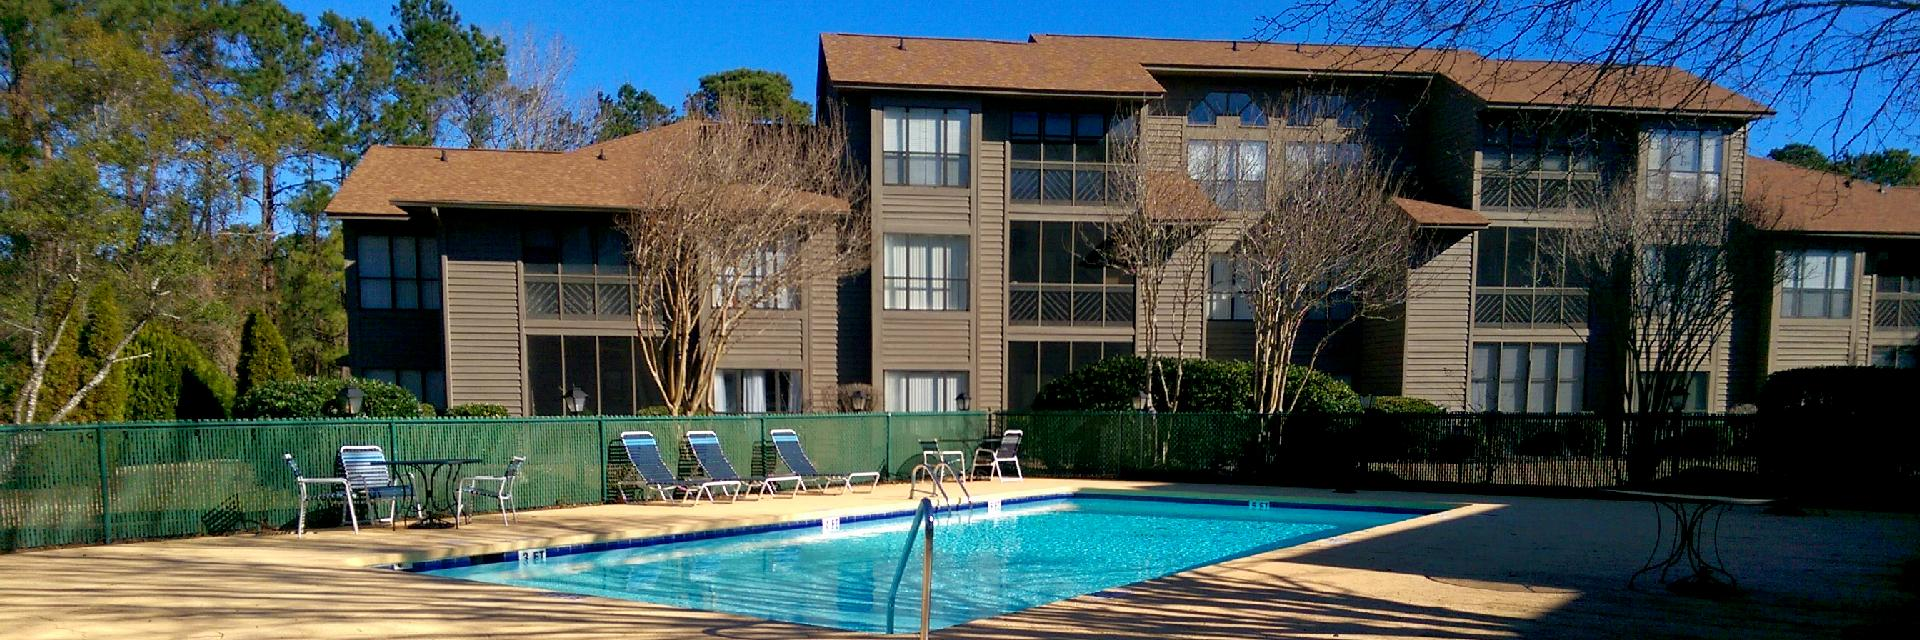 Condos for Sale in Indian Wells Murrells Inlet SC